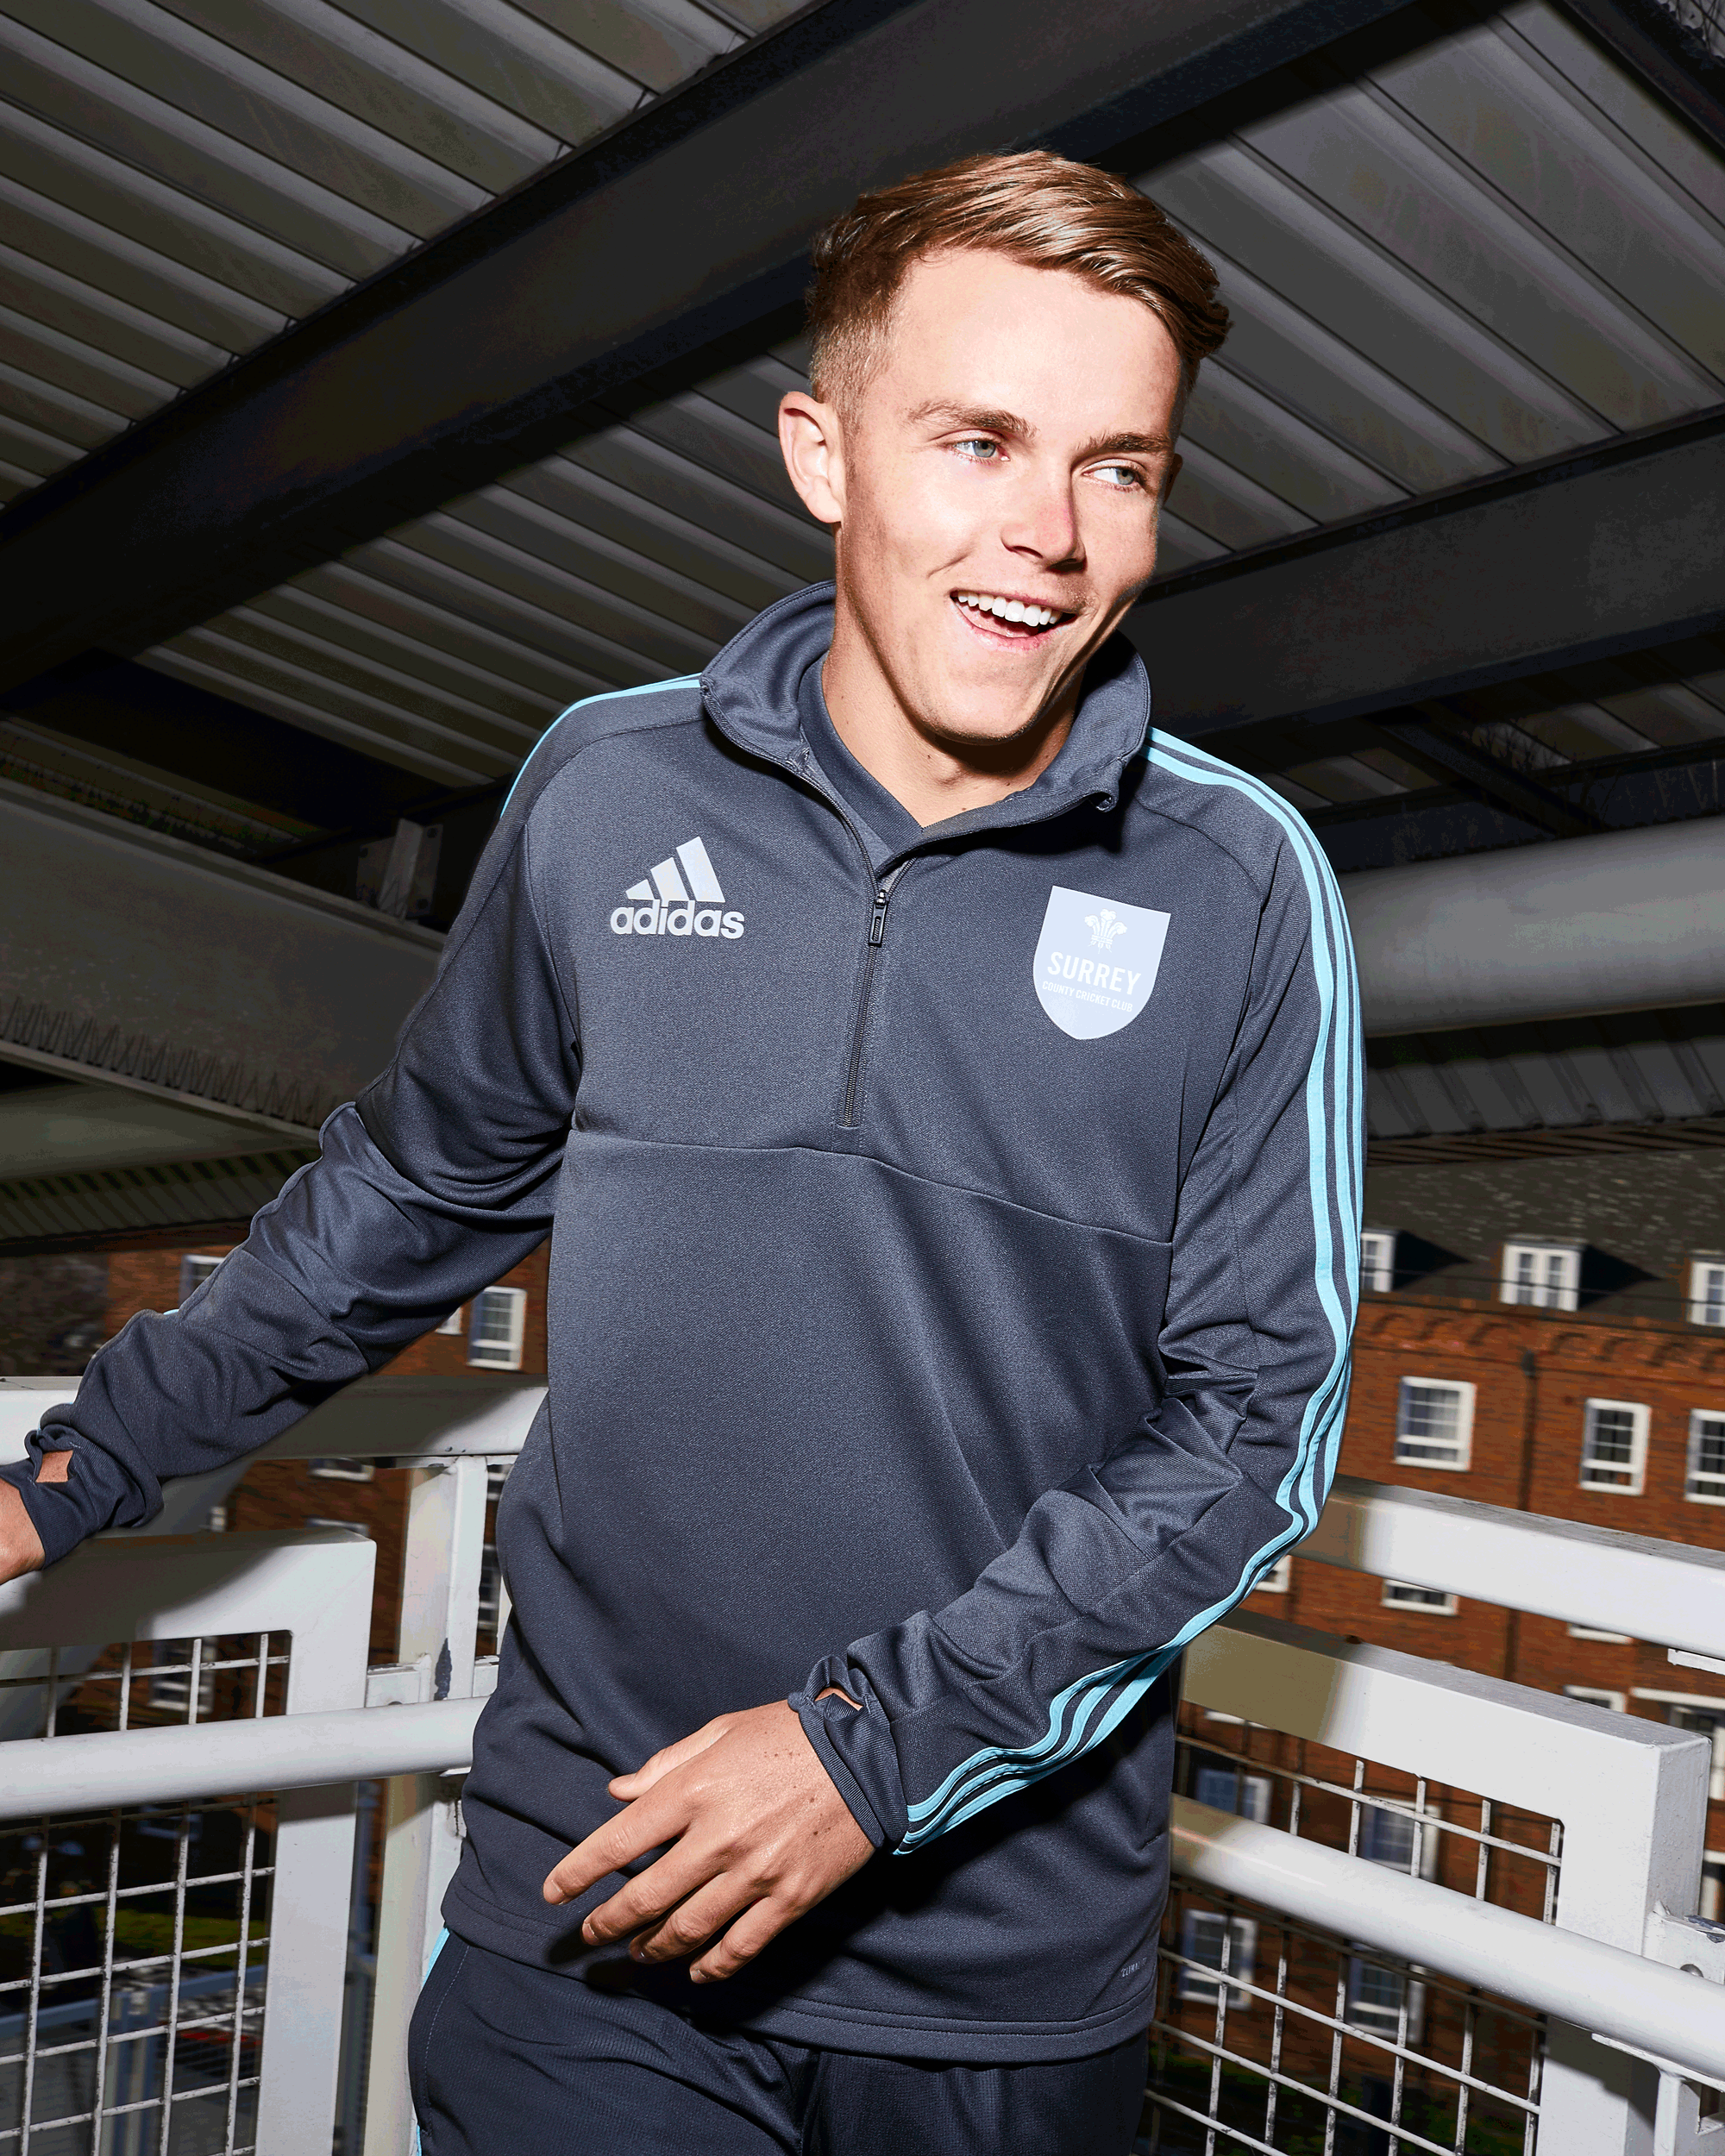 Surrey-Cricket-Launch-Adidas-26-02-190322.png